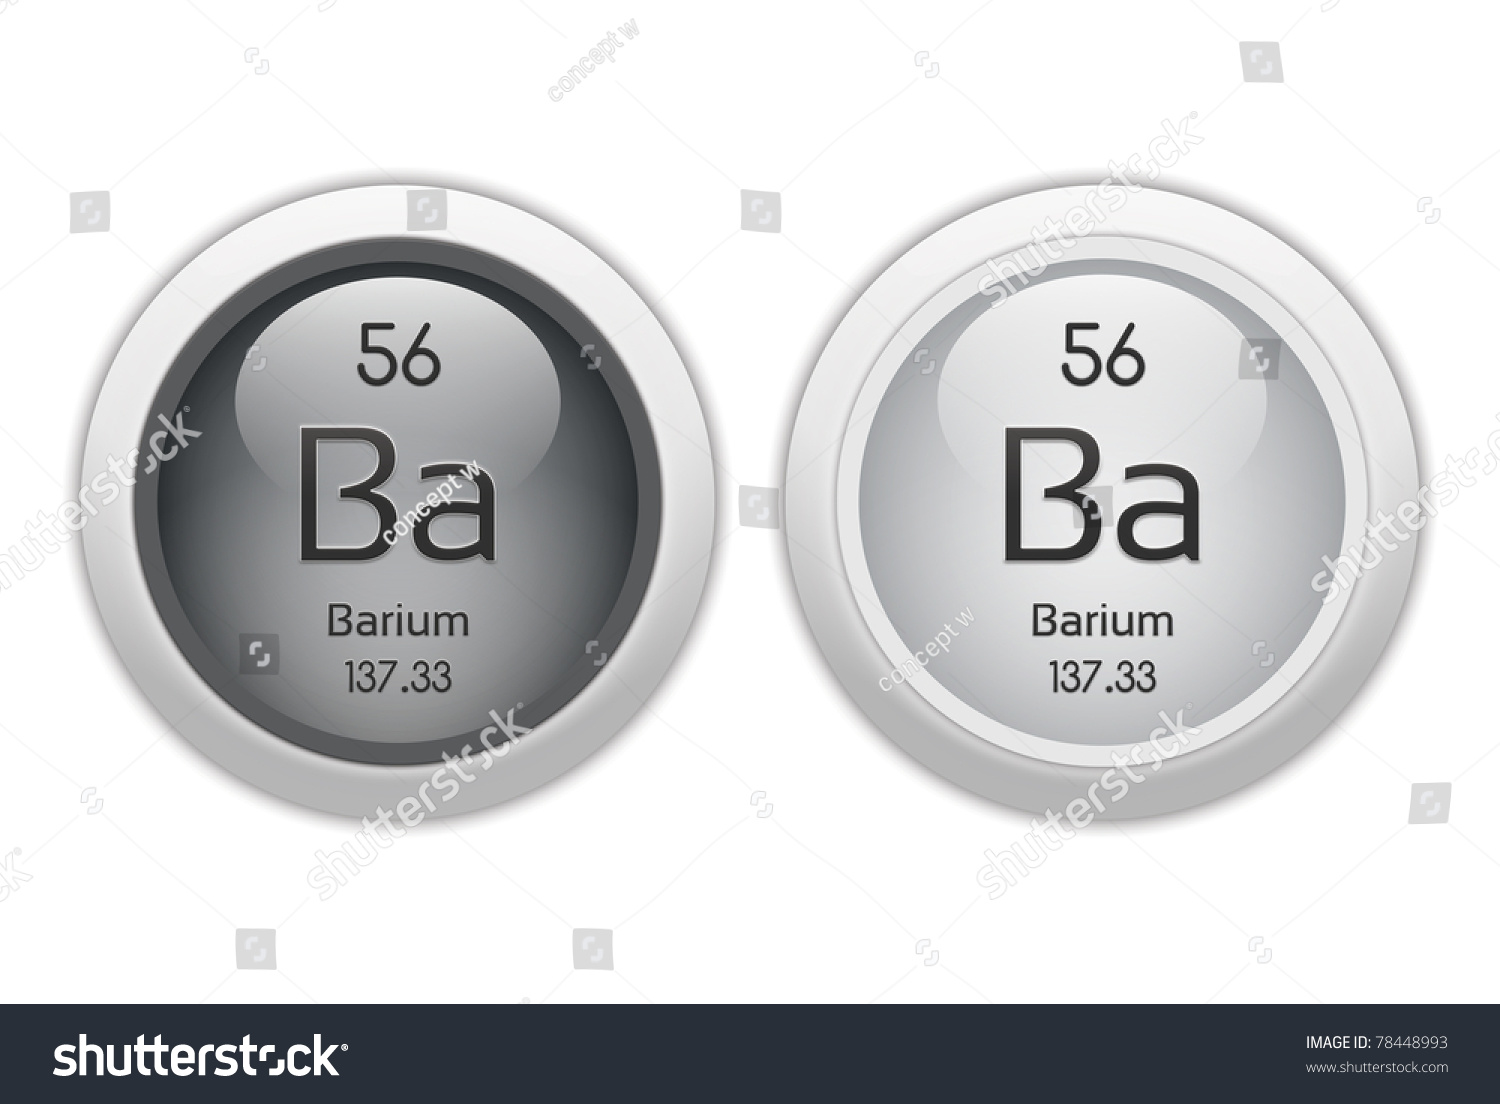 Barium two web buttons chemical element stock illustration barium two web buttons chemical element with atomic number 56 it is represented biocorpaavc Images